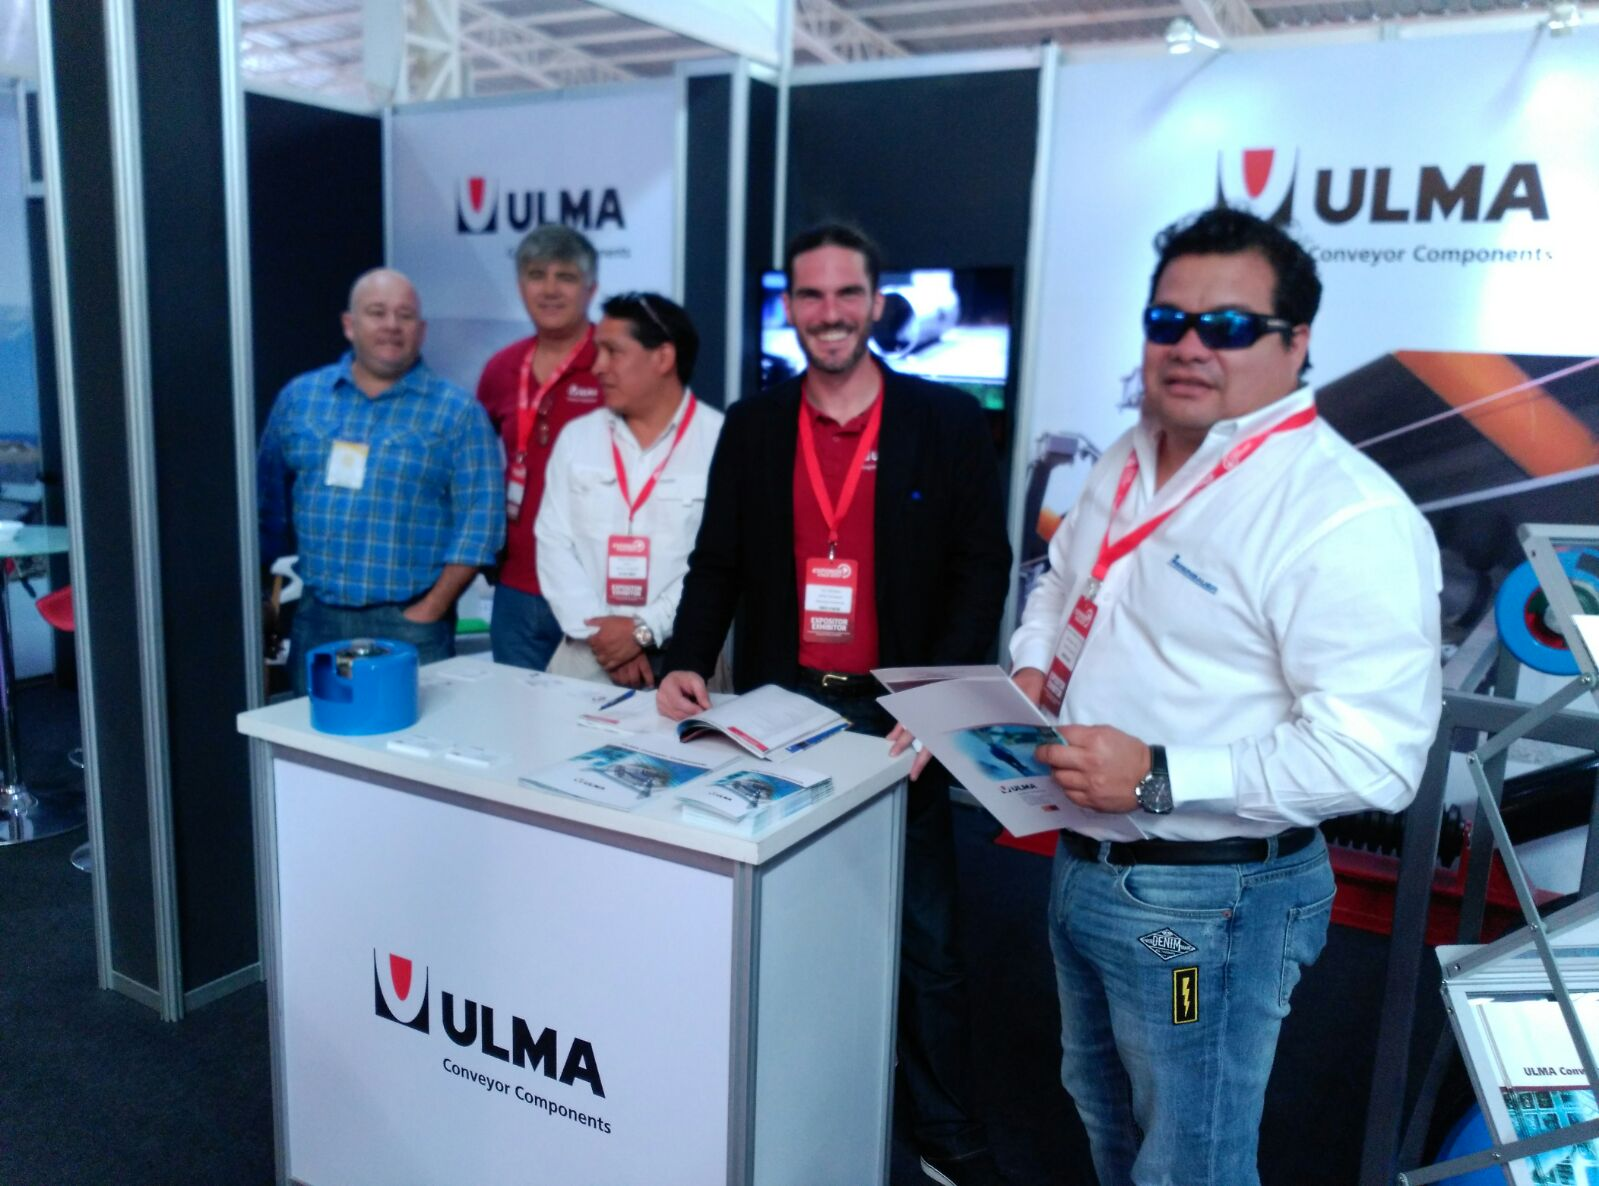 ULMA Conveyor Components at the EXPONOR 2017 Show